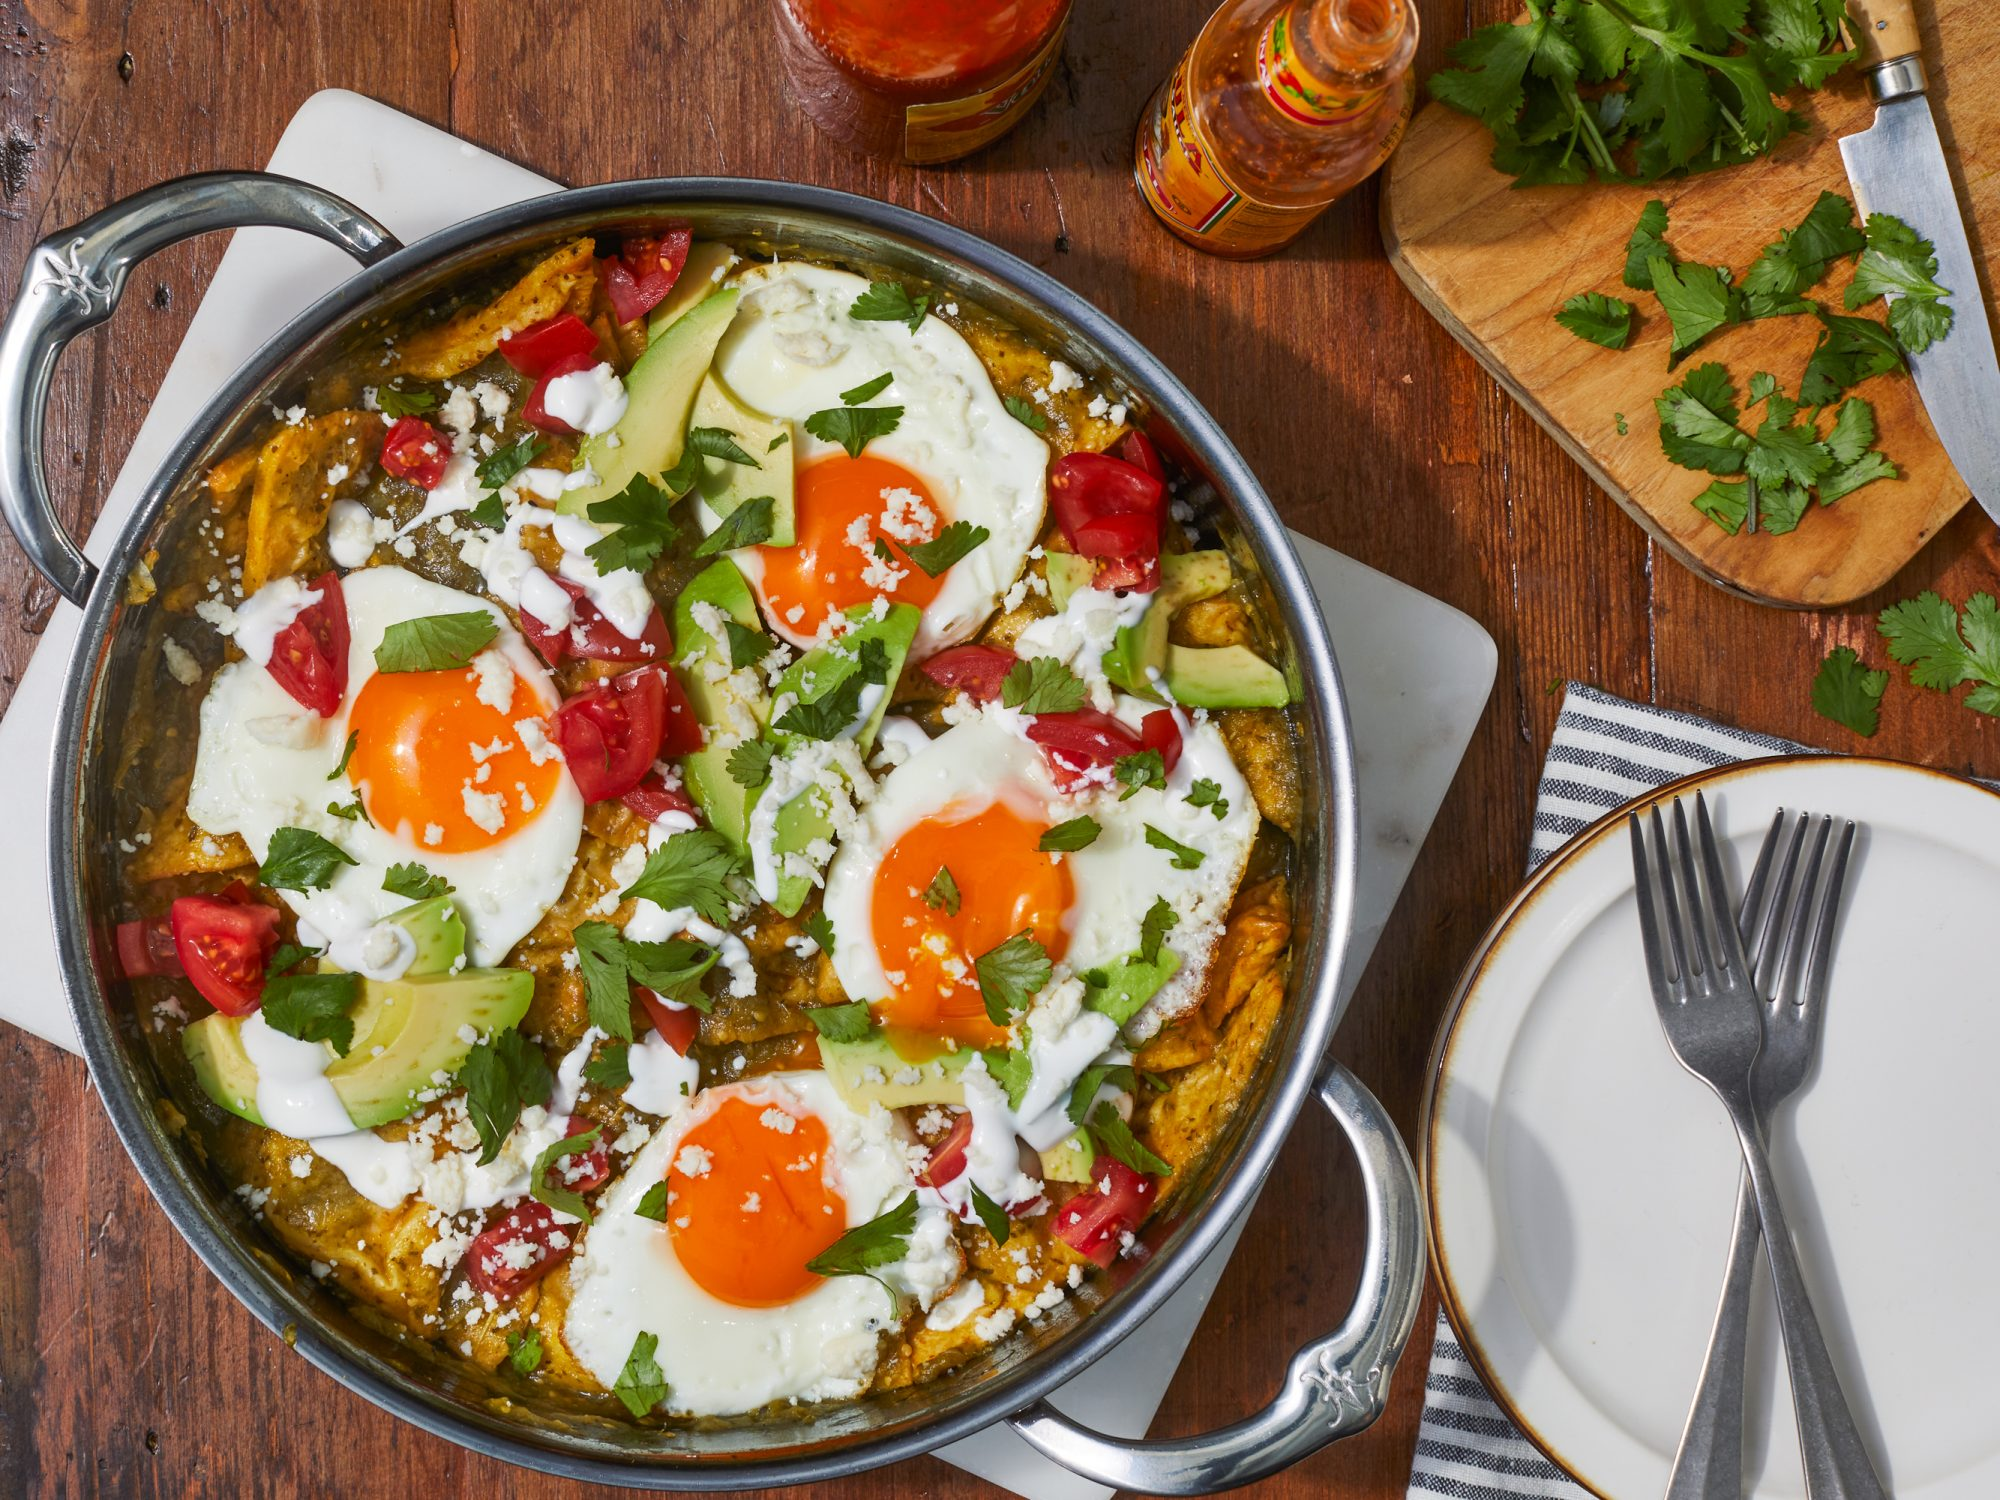 Chilaquiles with Tomatillo Salsa and Fried Eggs